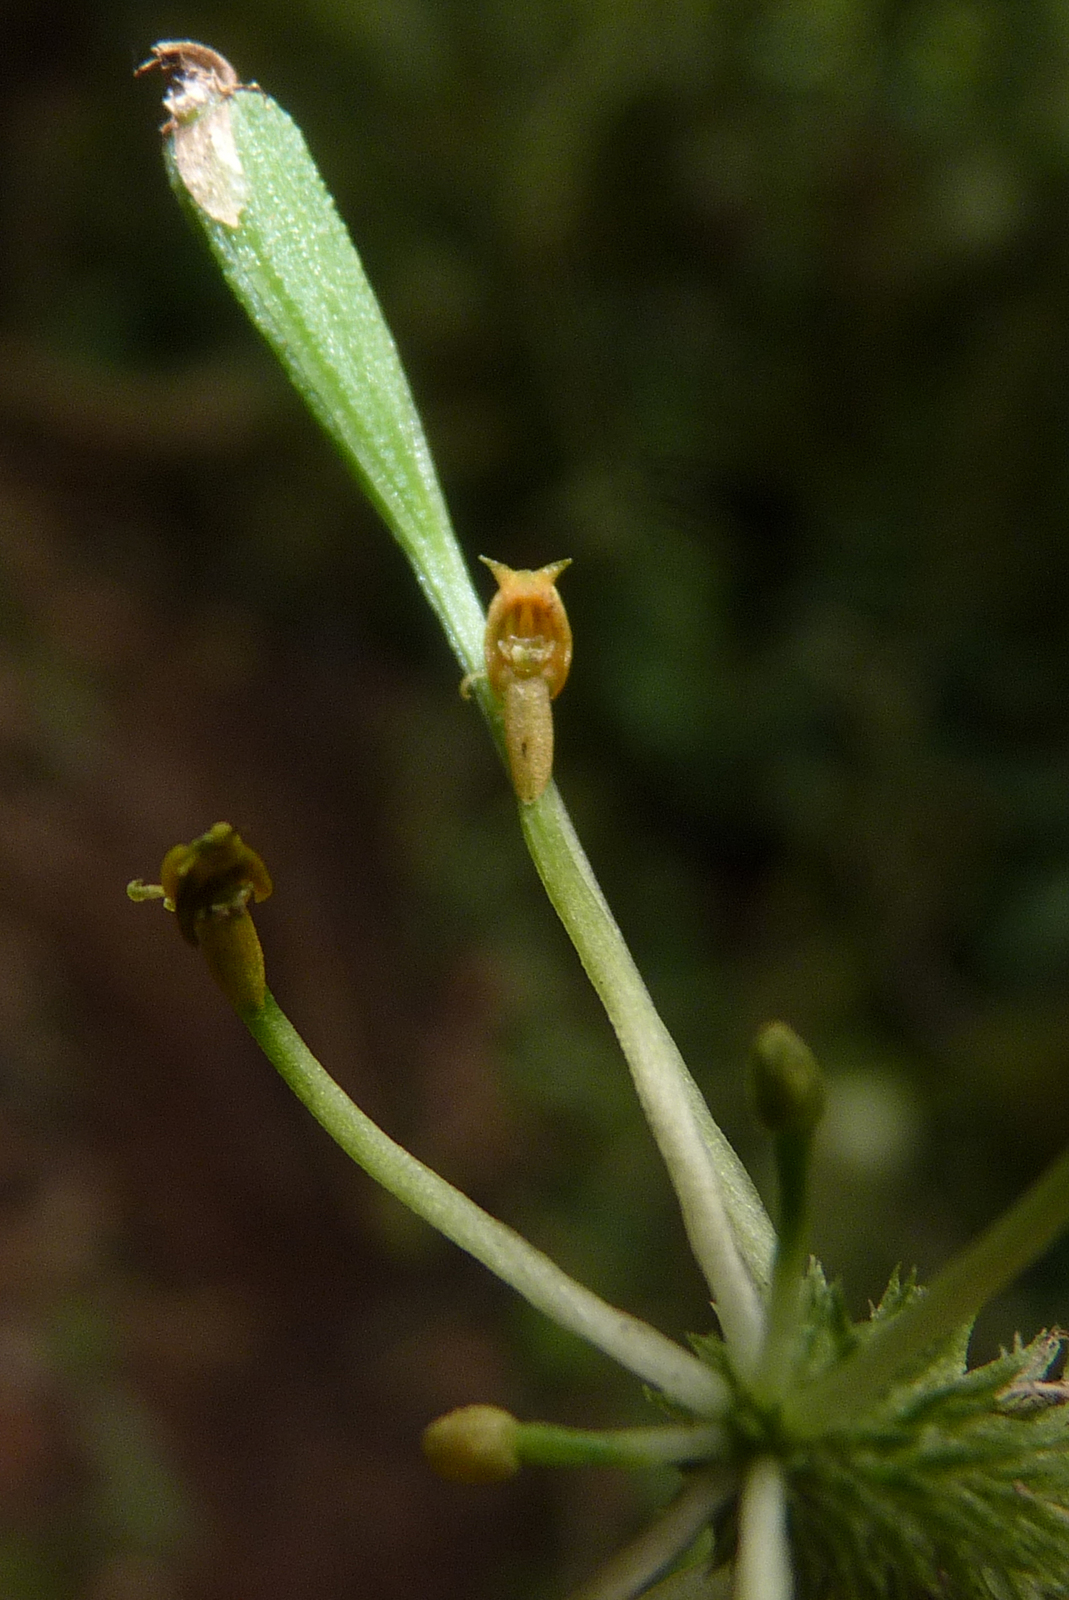 A new species of Adder's mouth orchid (Malaxis sp. nov.) has flowers that mimic an insect. Image © Trond Larsen.